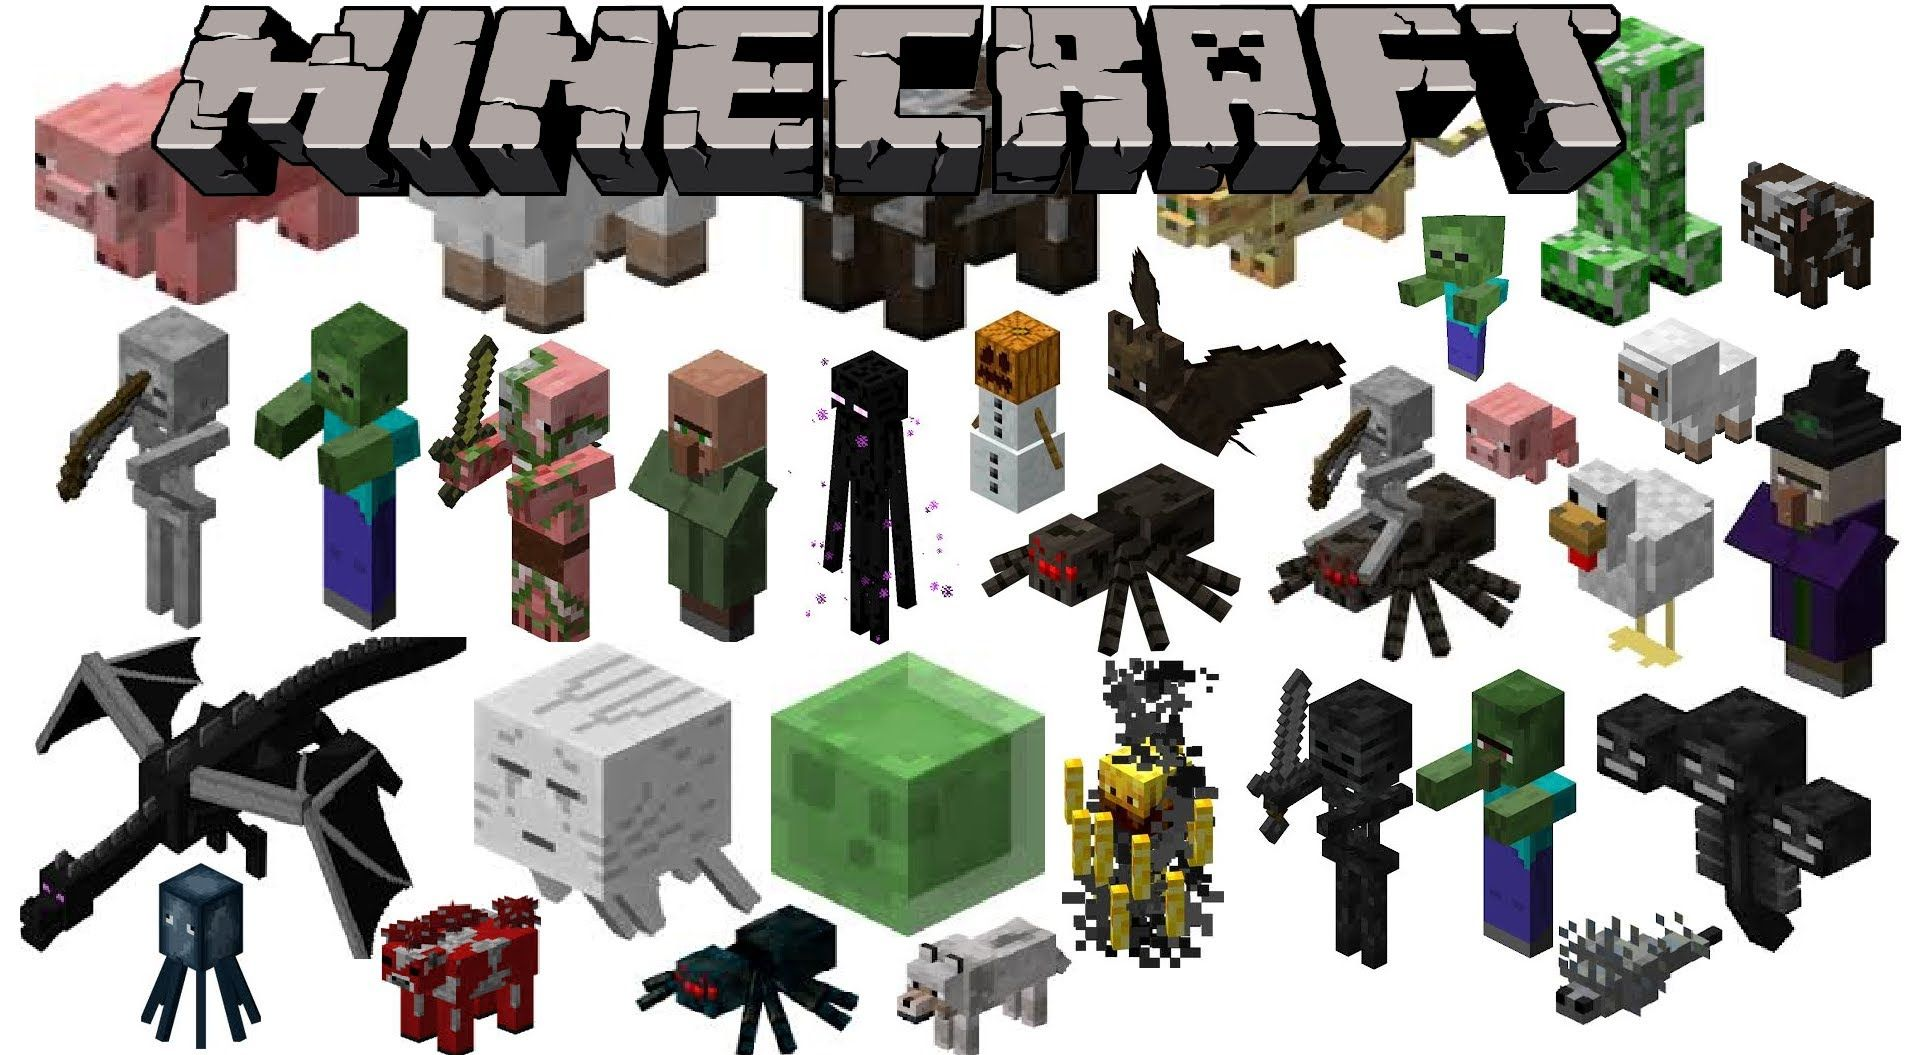 minecraft monsters and animals - Google Search | Minecraft mobs ... for All Minecraft Characters  45gtk